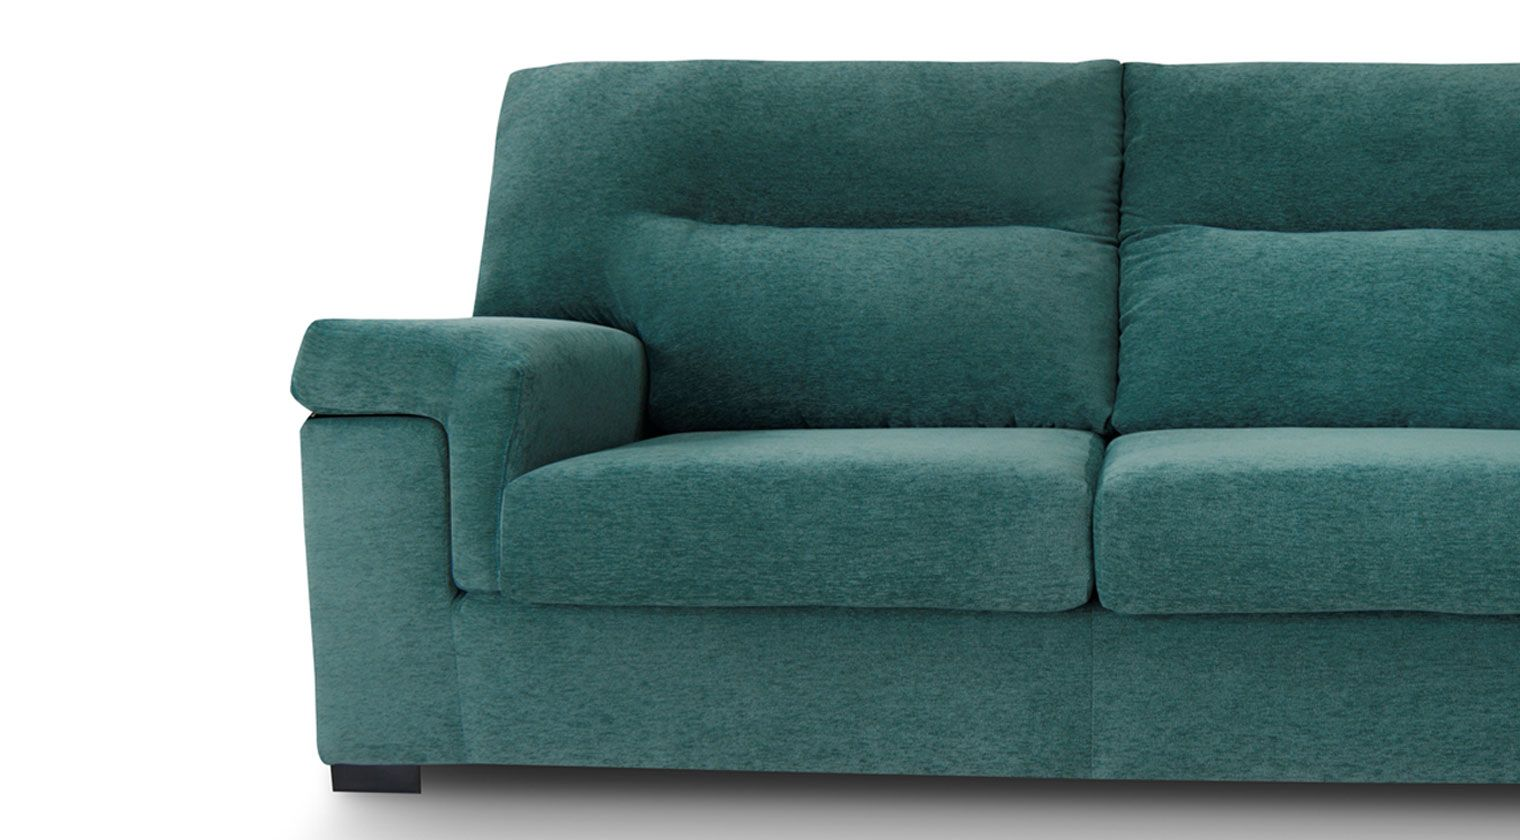 Comprar sof tela okio chaiselongue izq 3 plazas for Sofas baratos asturias